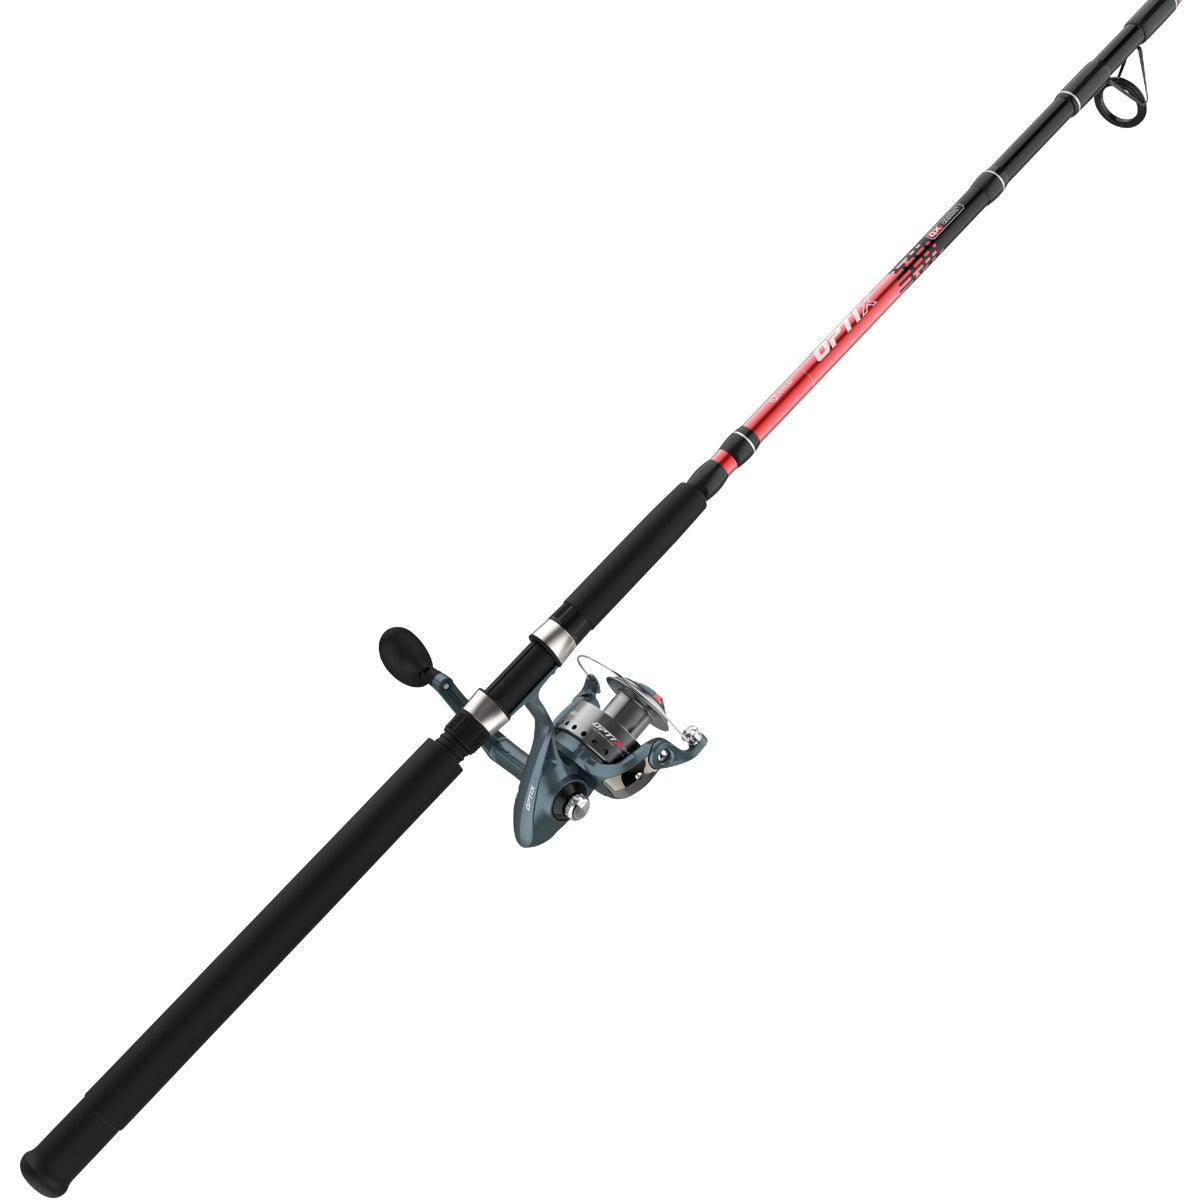 8' MED SPINNING ROD/REEL